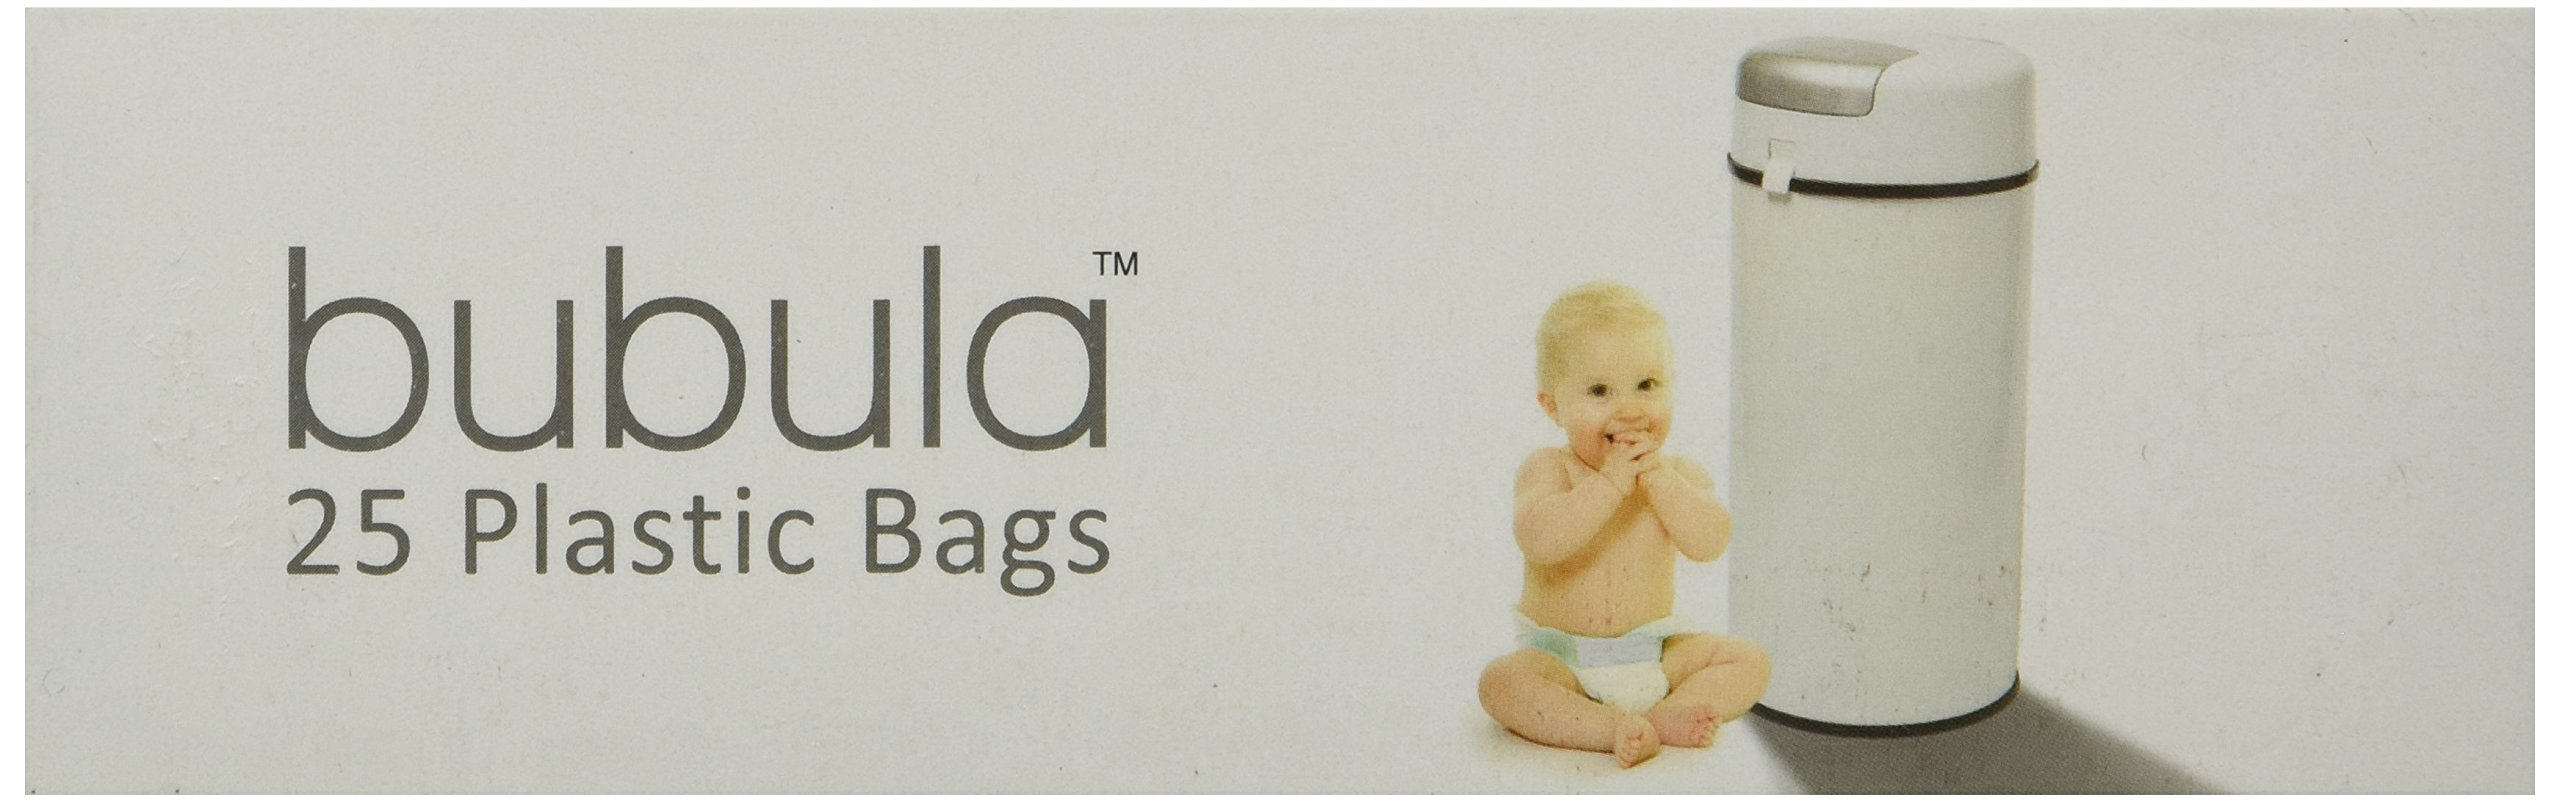 Bubula Replacement Bags - 25 ct